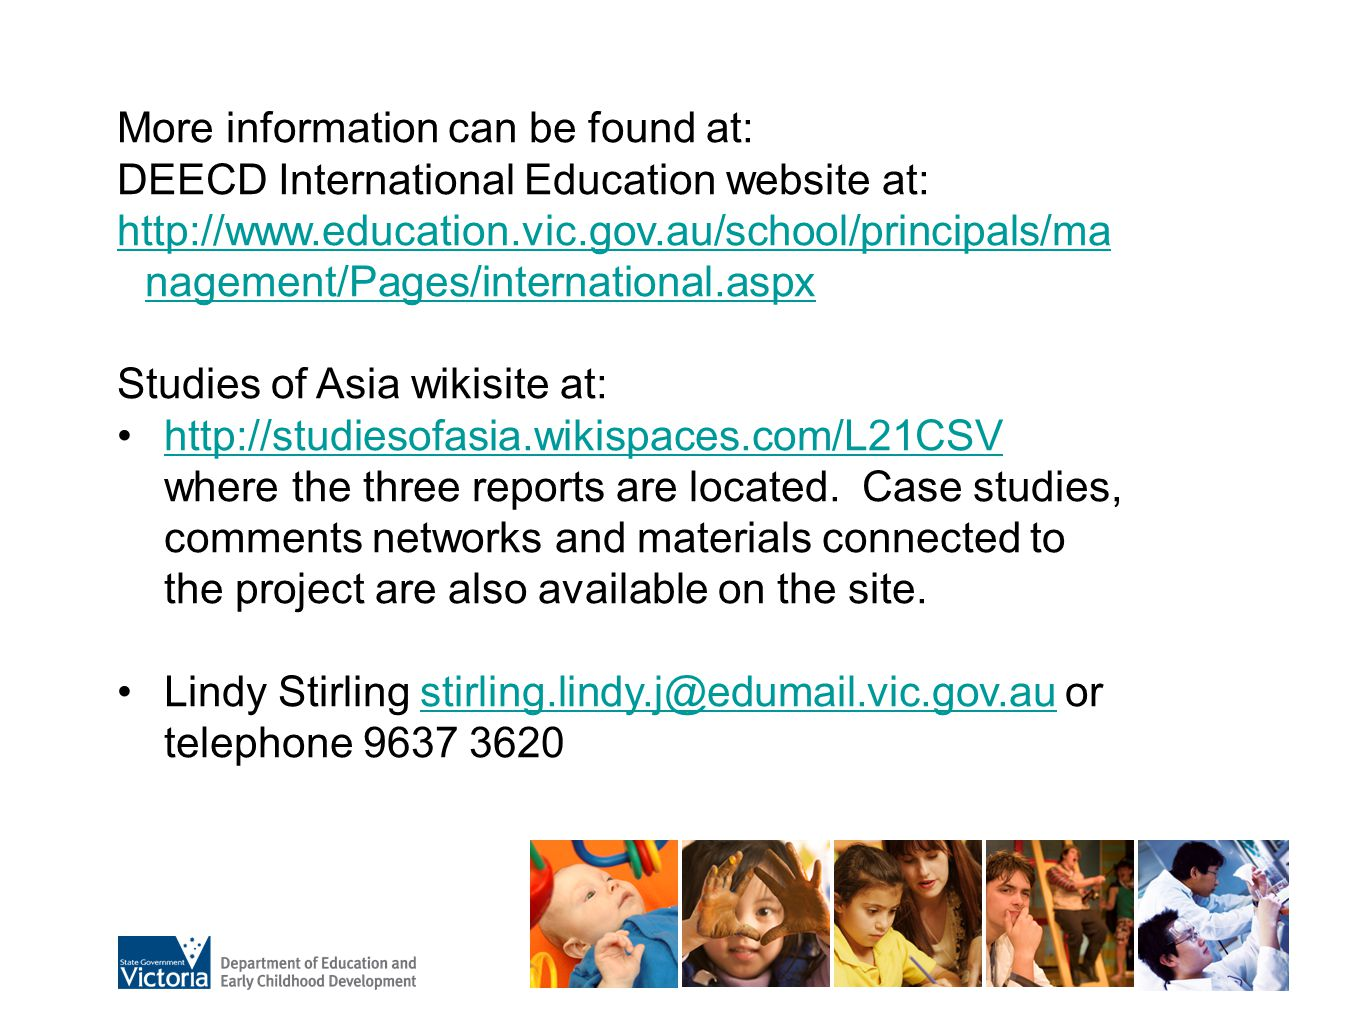 More information can be found at: DEECD International Education website at: http://www.education.vic.gov.au/school/principals/ma nagement/Pages/intern